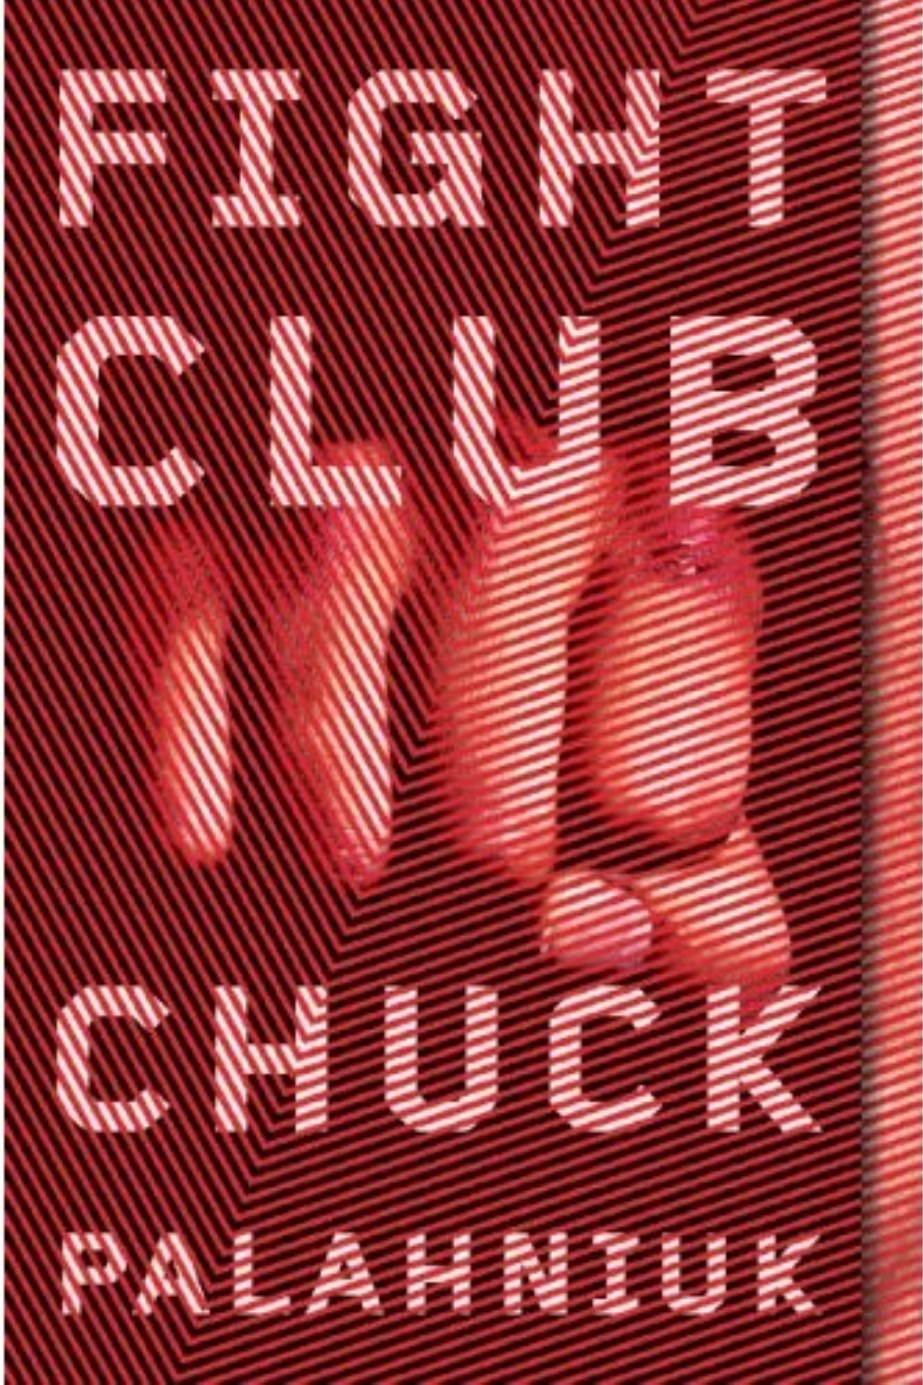 essays on fight club novel Earlier this year, palahniuk issued fight club 2, a comic book that follows its narrator, sebastian, as he unknowingly stops taking his medication and is re-introduced to tyler durden, the.